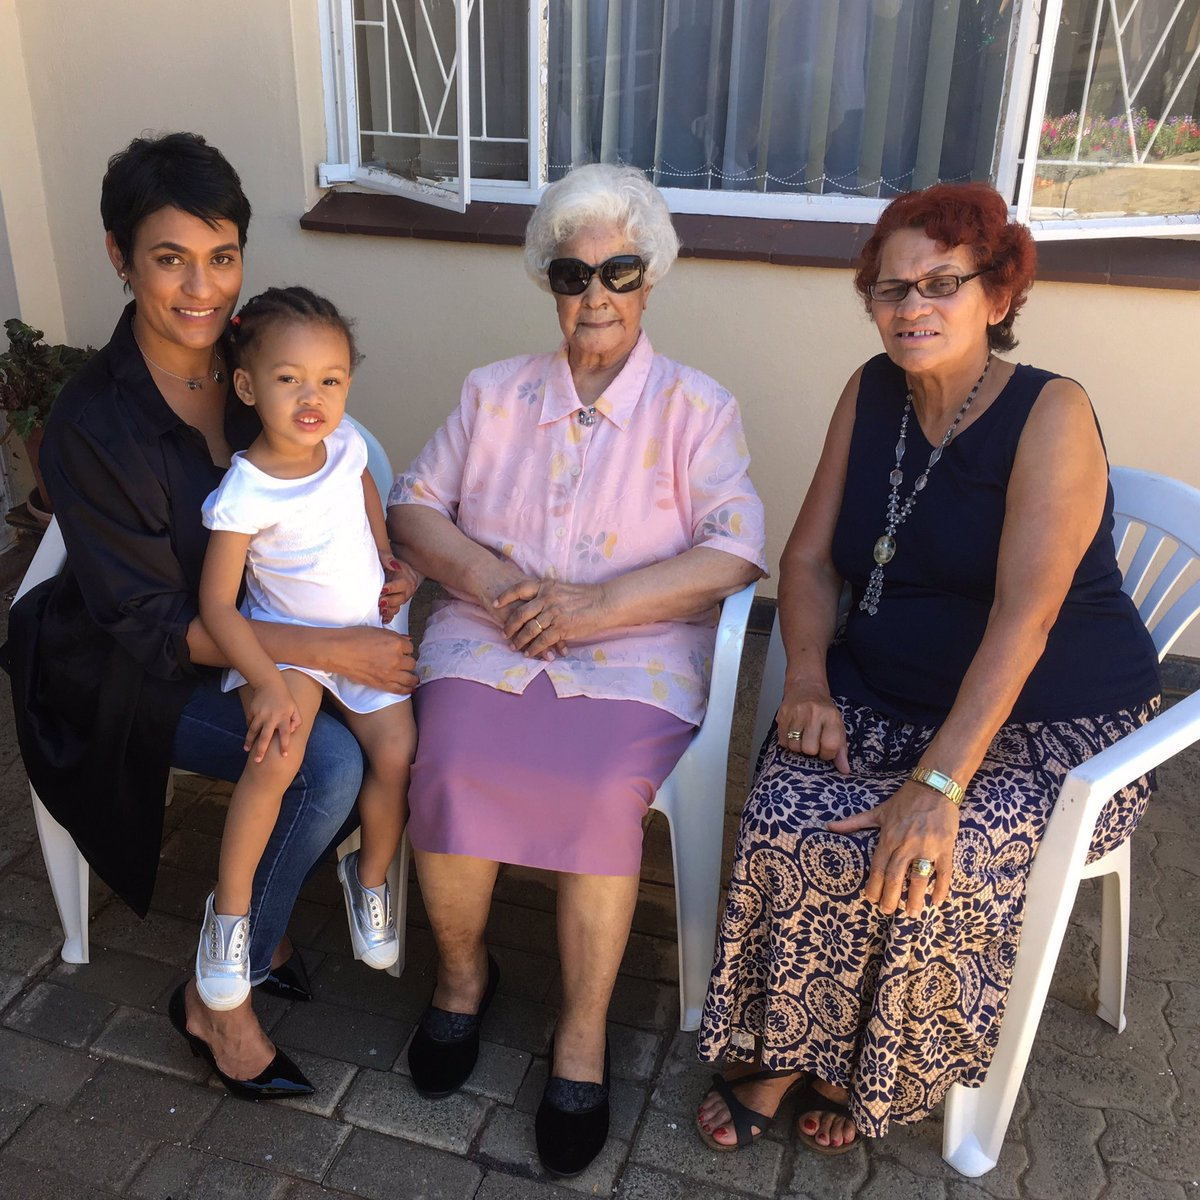 Kairo with her grandmother, great grandmother and great great grandmother. 🌟🌟🌟🌟 4 GENERATIONS 🙏🏼 ... This is how God replenishes your spirit. I feel amazing. And privileged. And grateful. ❤️